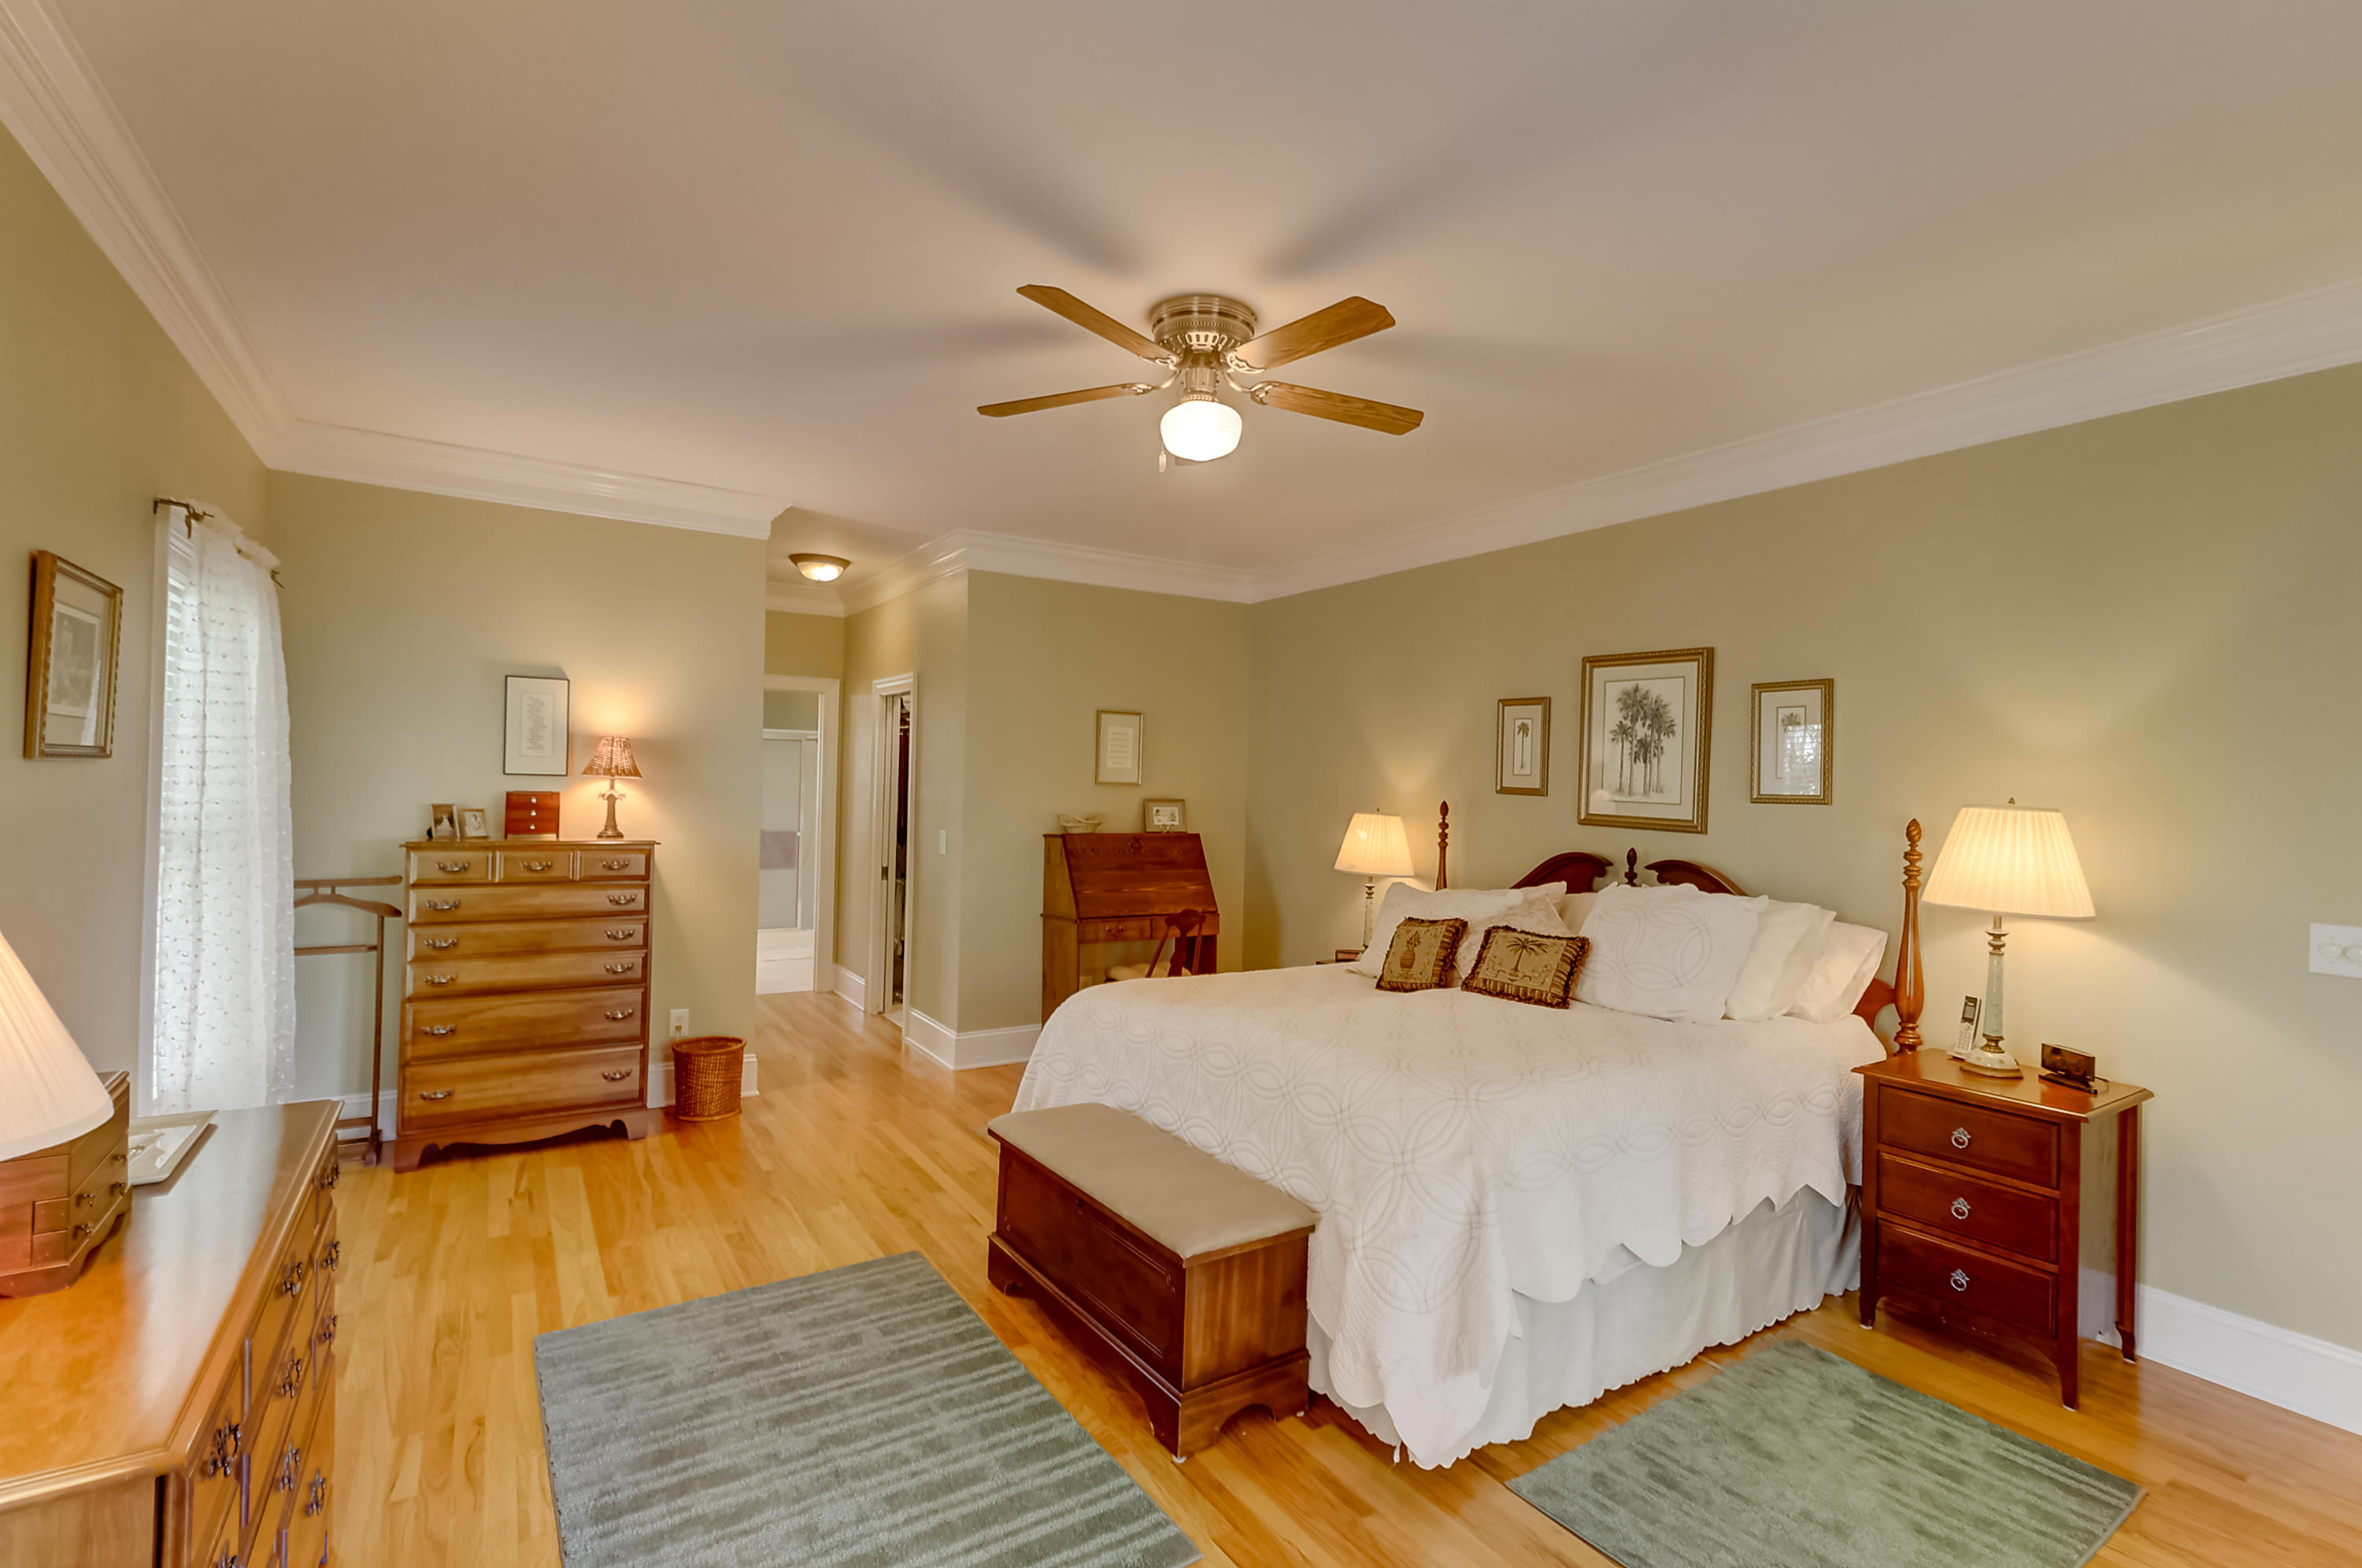 Stratton Place Homes For Sale - 1494 Stratton, Mount Pleasant, SC - 45